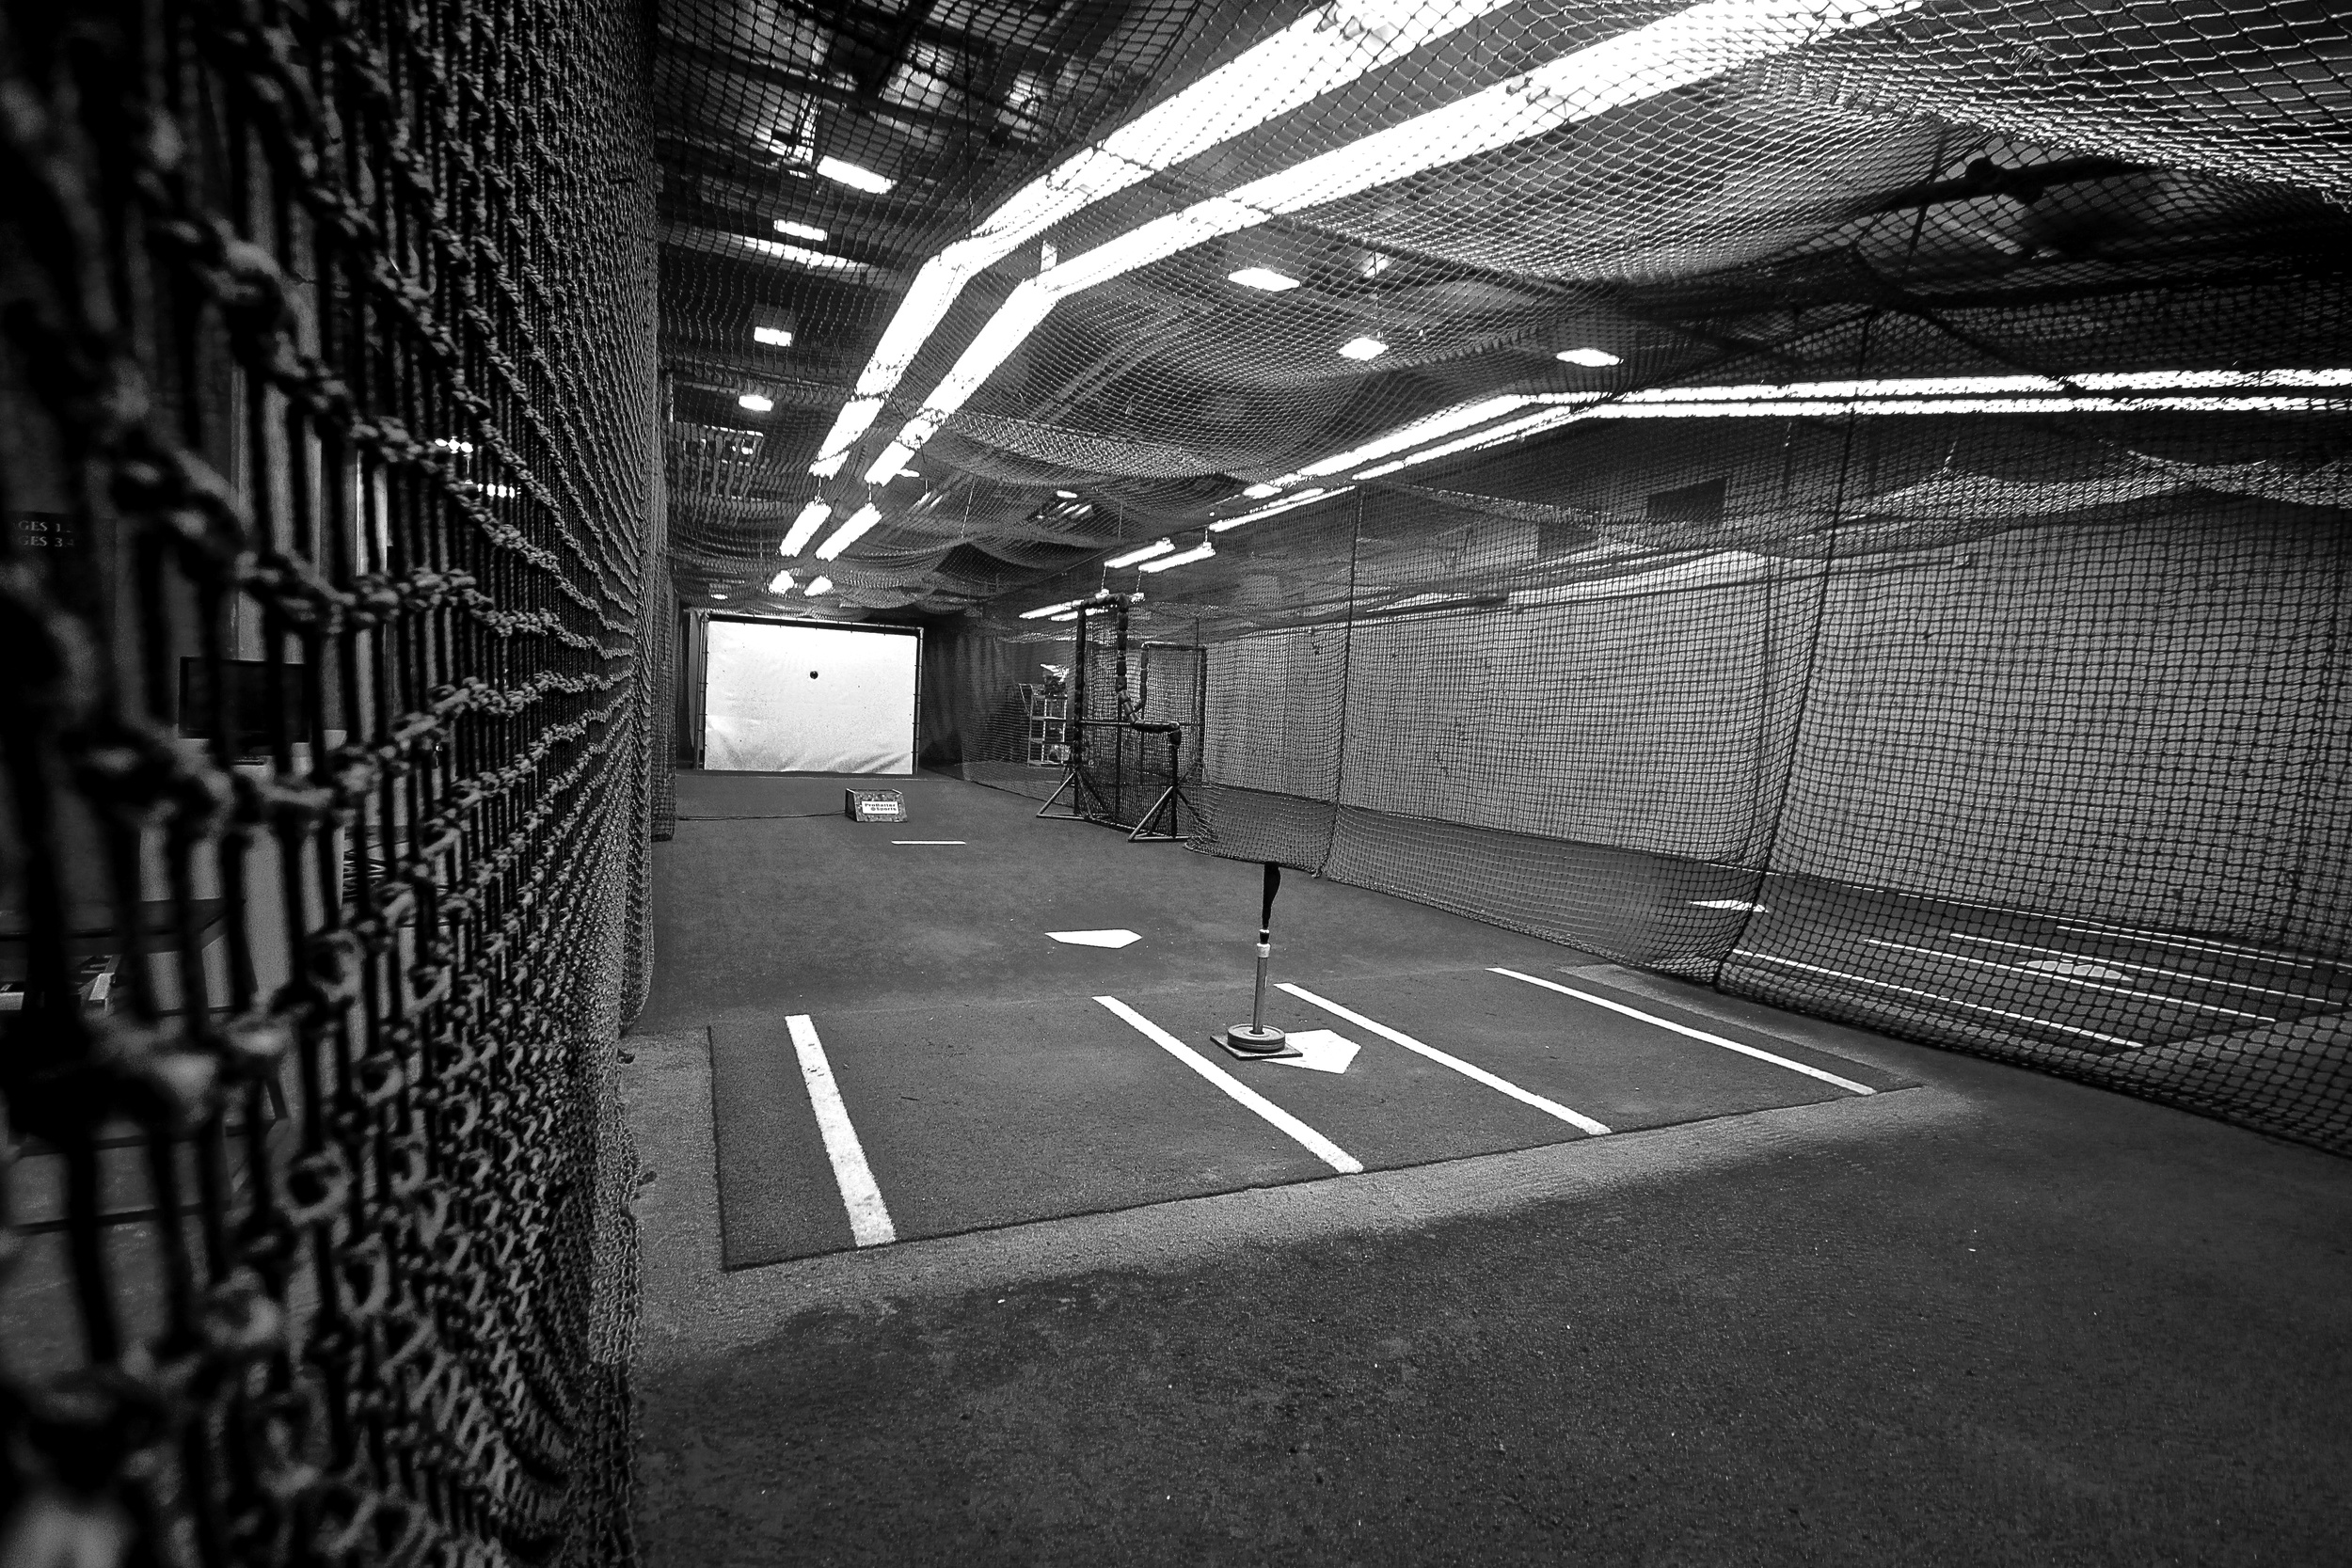 Batting Cages in black and white